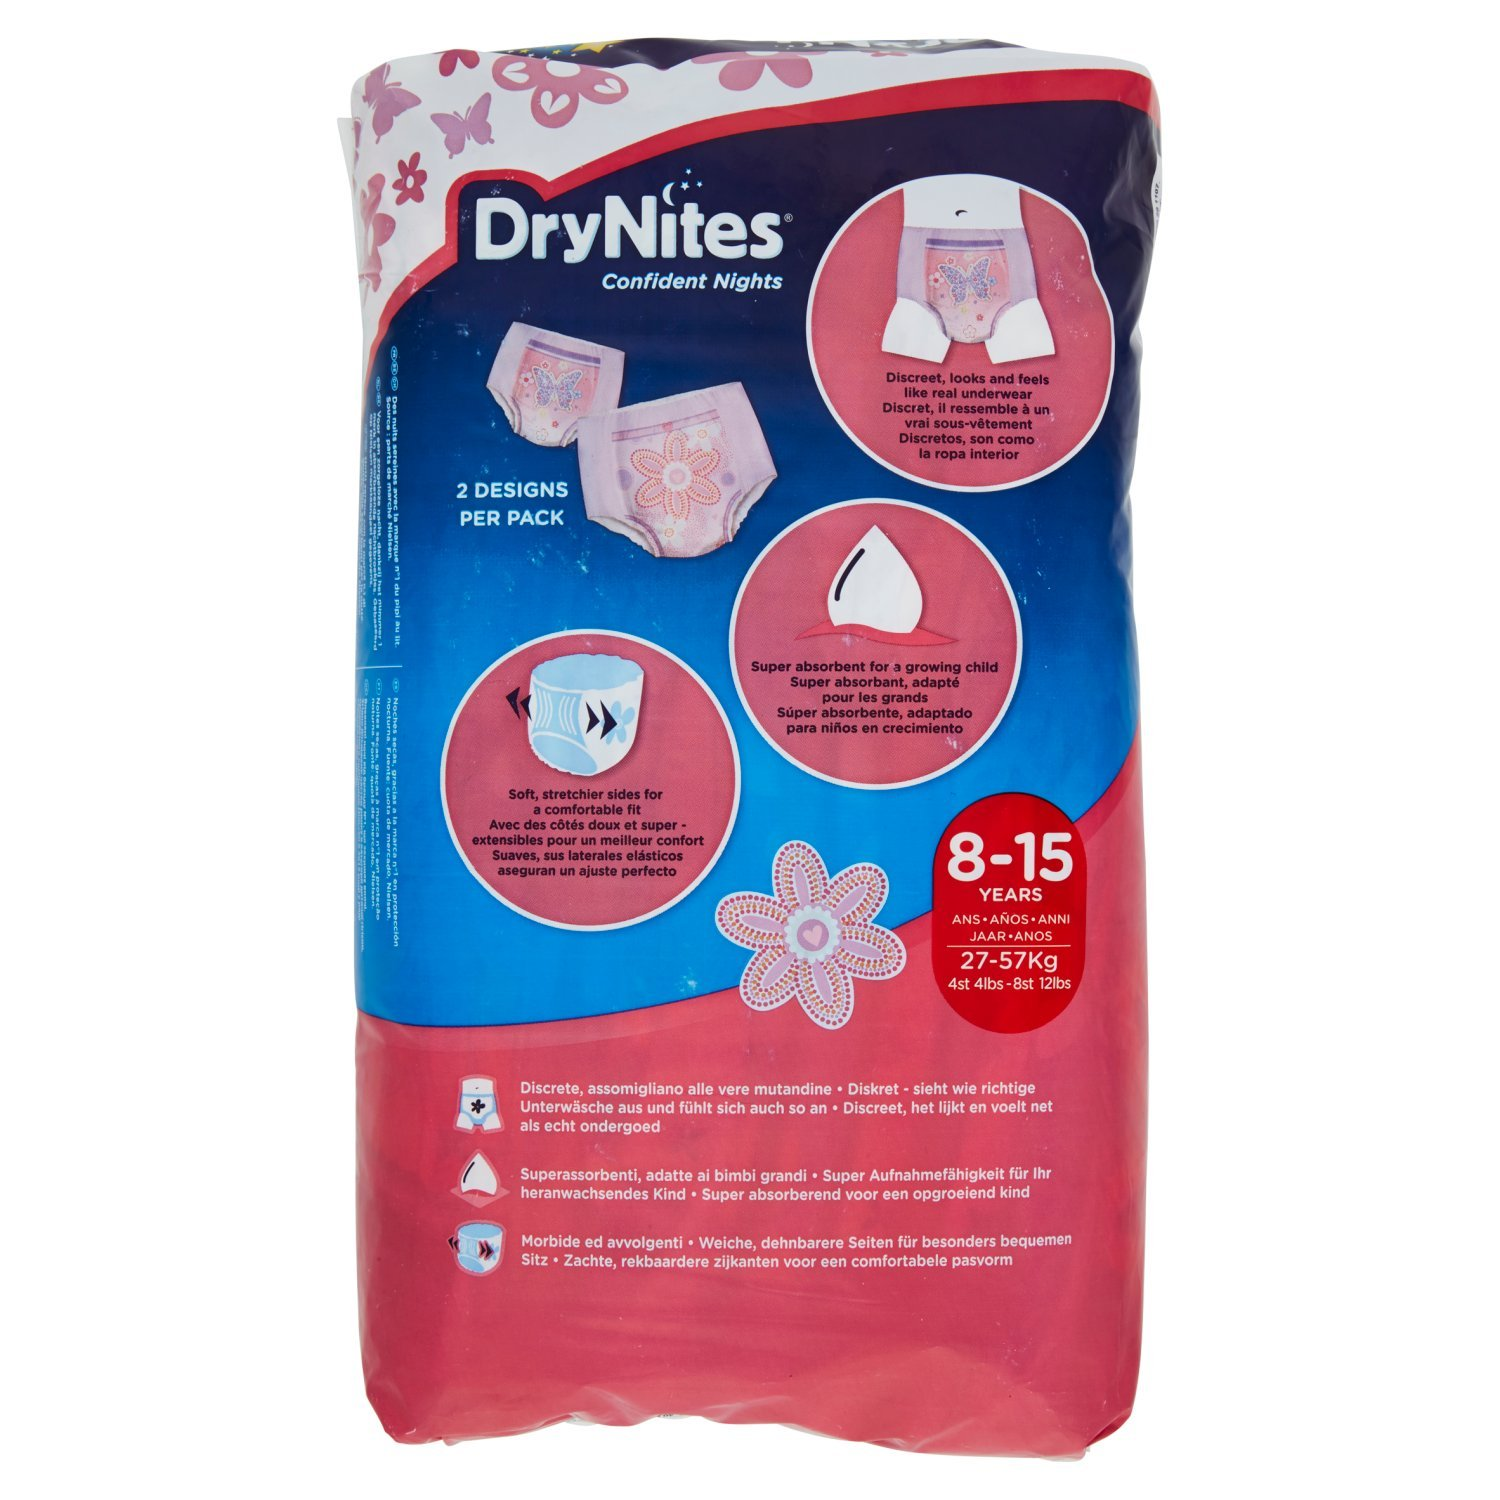 Amazon.com: Huggies DryNites Pyjama Pants for Girls 8-15 Years (27 - 57 kg) 2 x by Huggies: Health & Personal Care